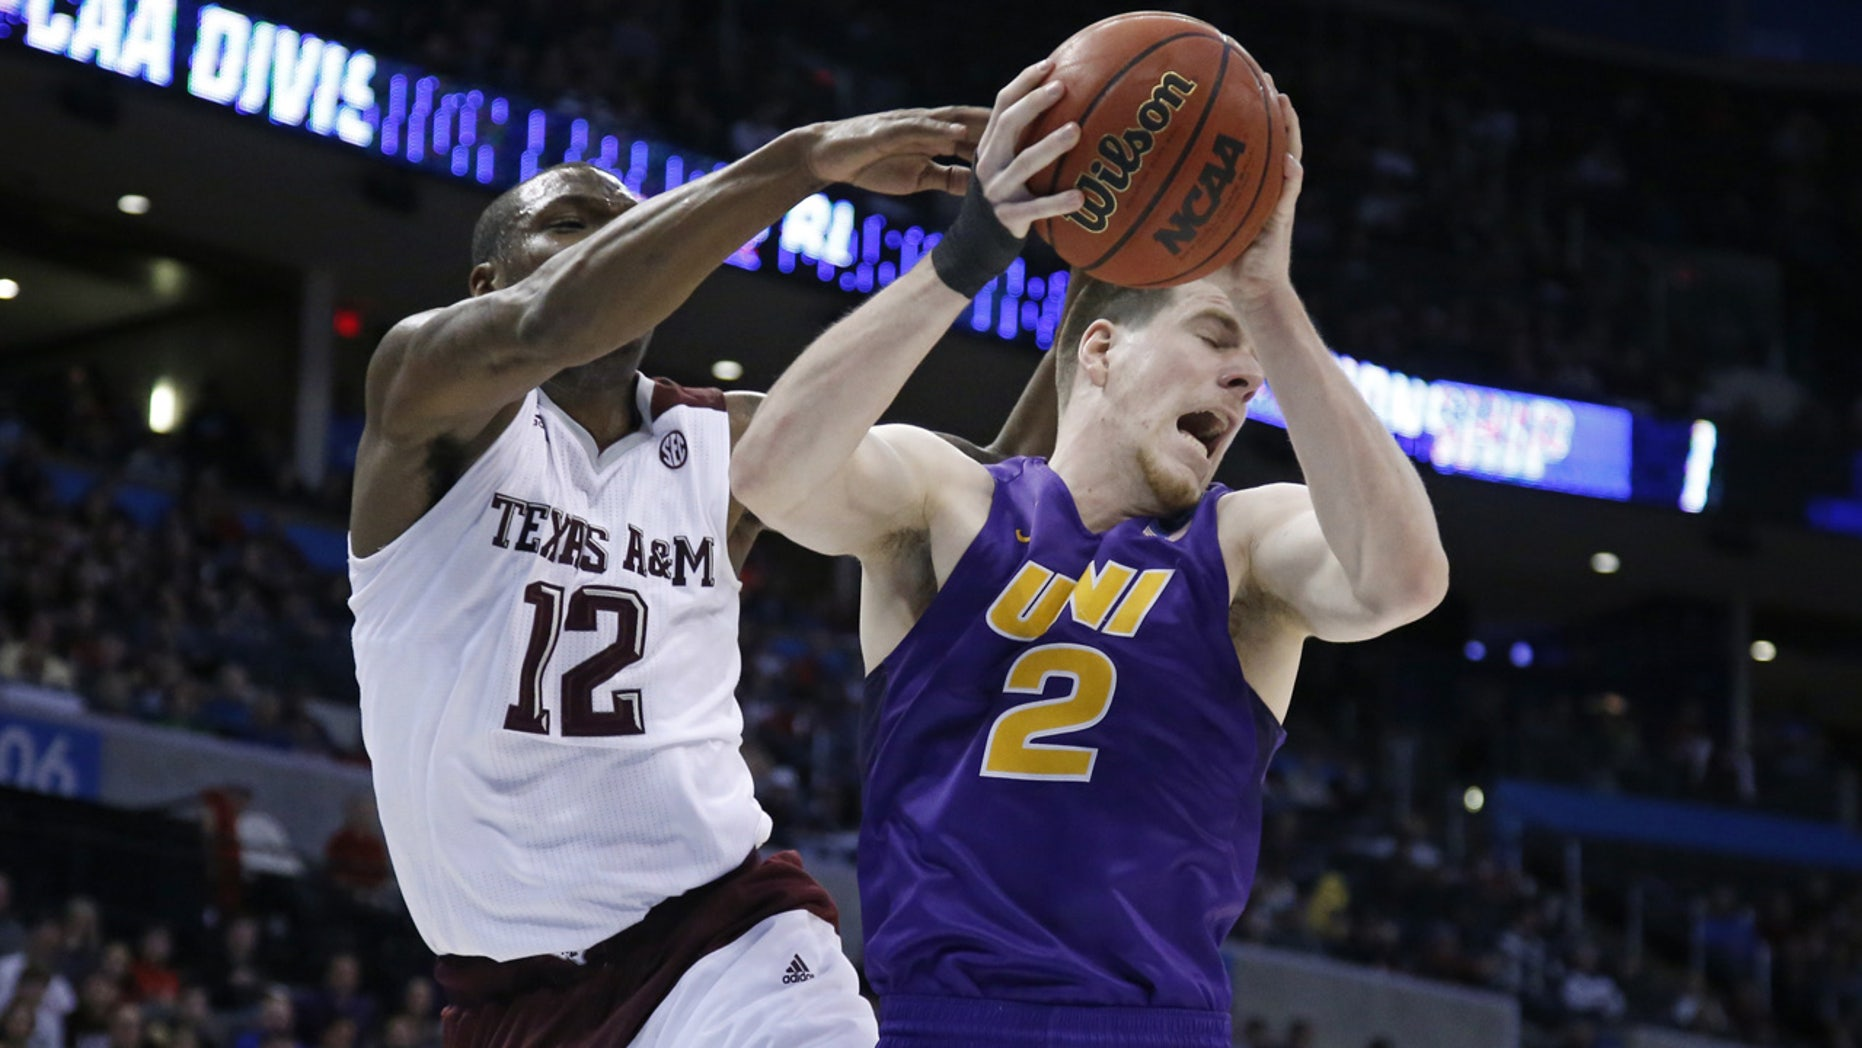 March 20, 2016: Northern Iowa forward Klint Carlson (2) grabs a rebound in front of Texas A&M guard Jalen Jones (12) in the first half of a second-round men's college basketball game in the NCAA Tournament in Oklahoma City (AP Photo/Sue Ogrocki)